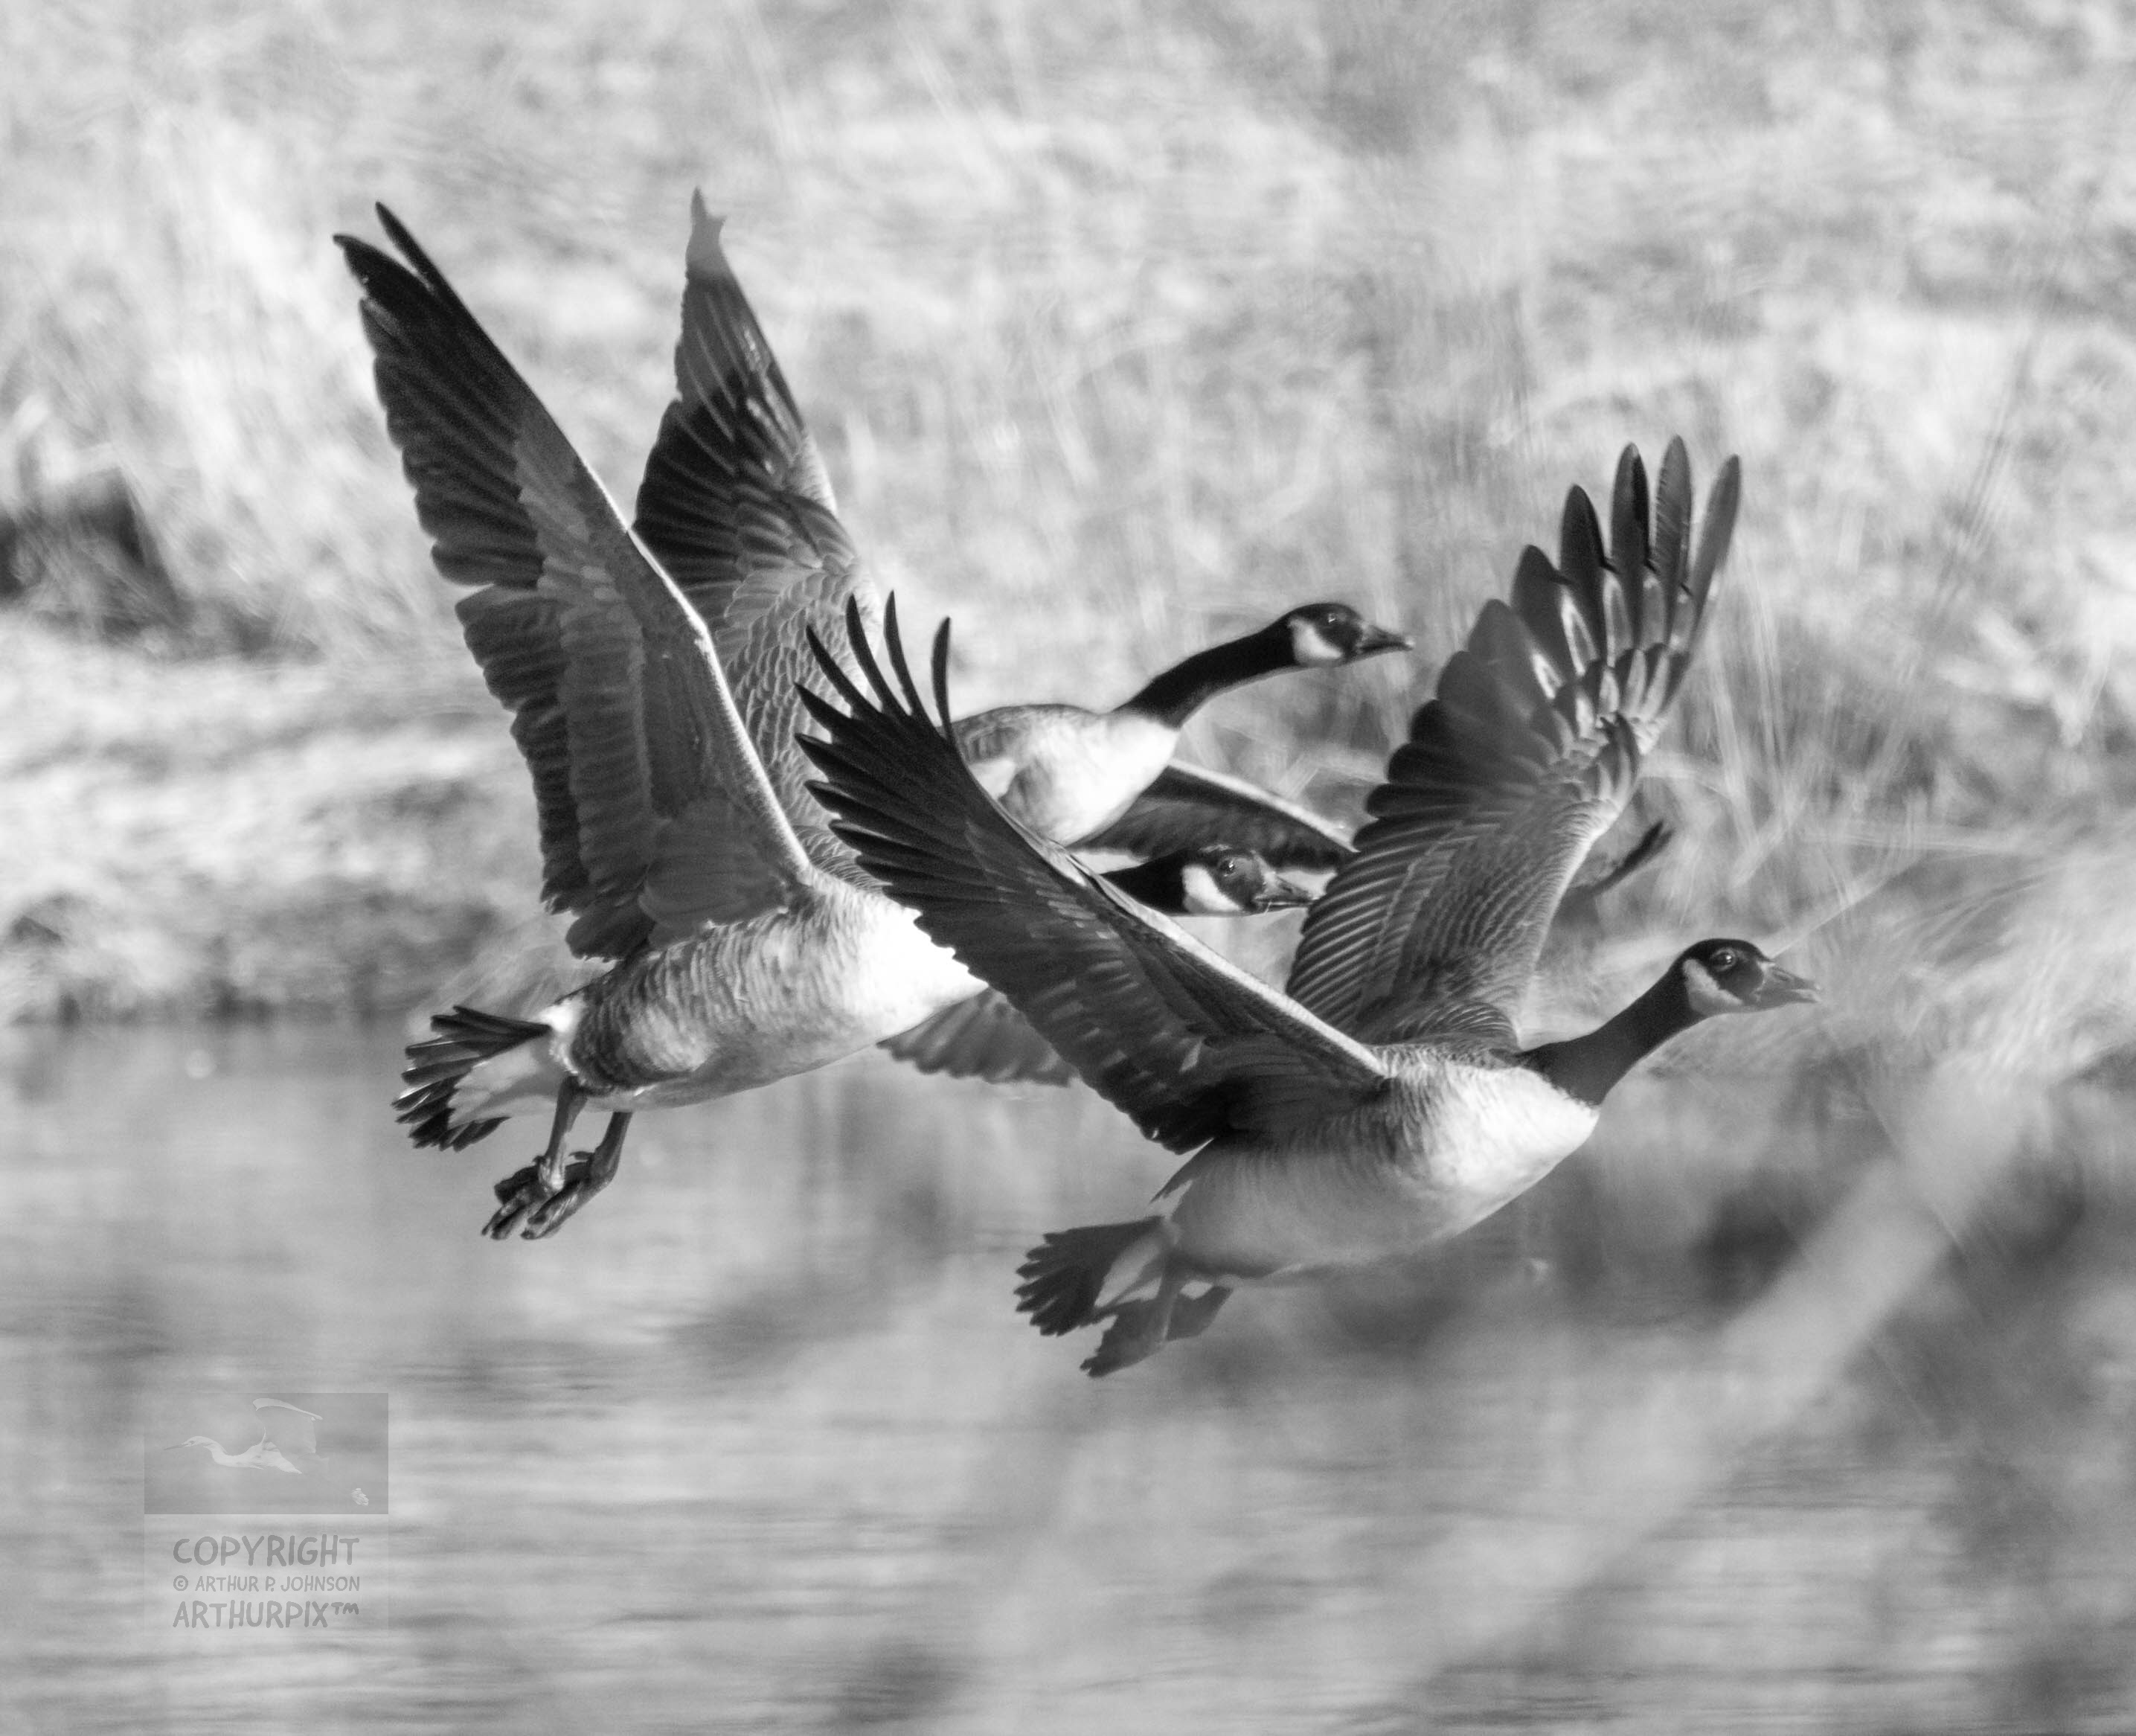 Three Canada Geese, flying over a pond.